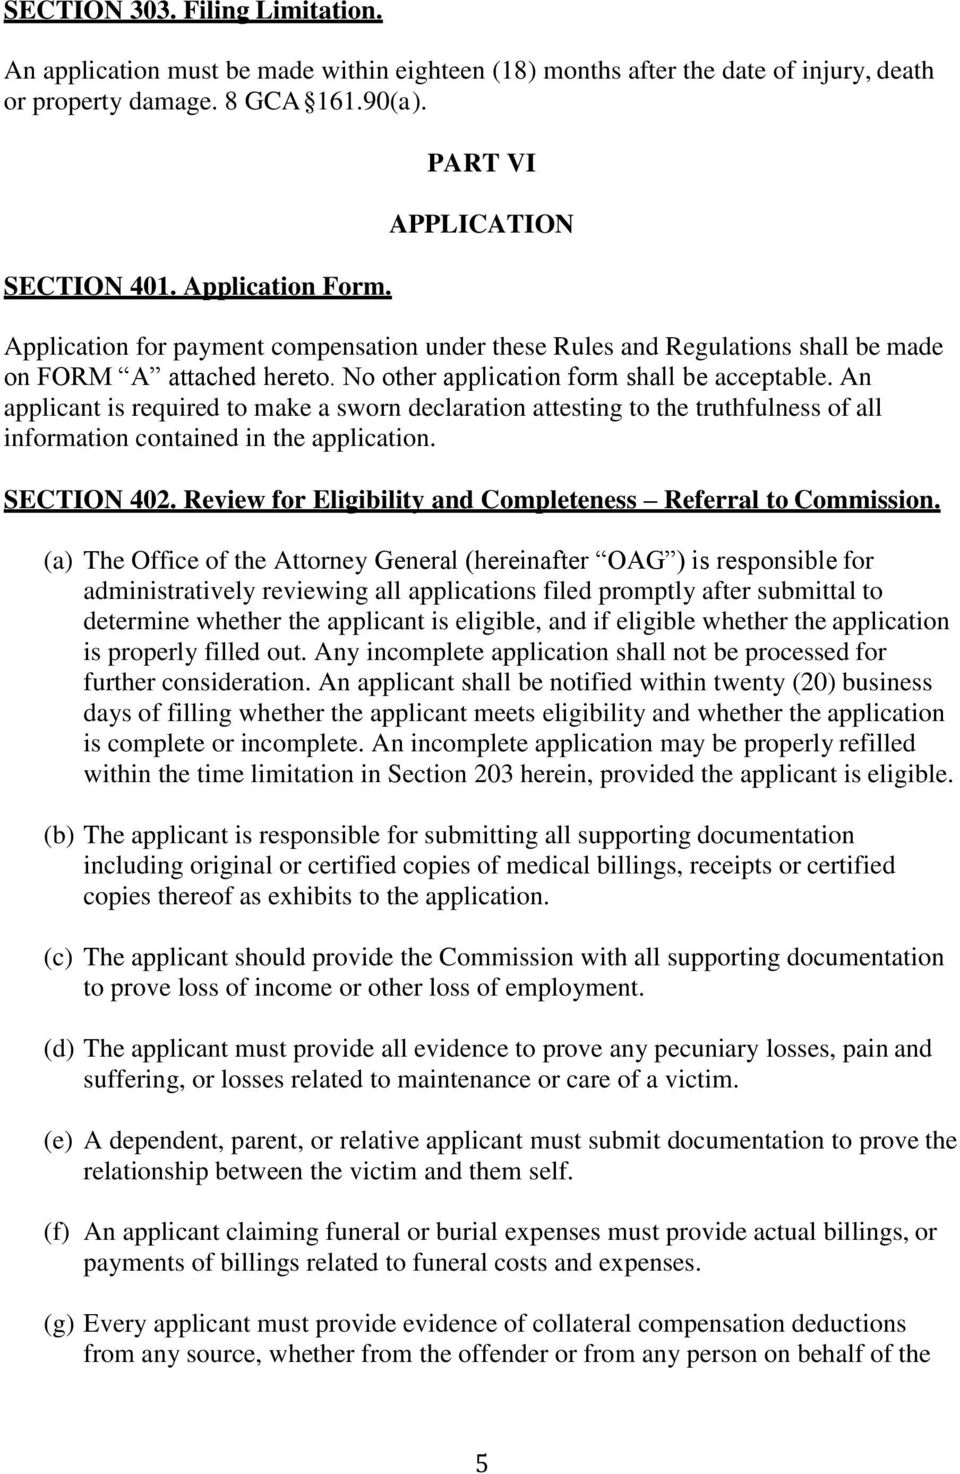 An applicant is required to make a sworn declaration attesting to the truthfulness of all information contained in the application. SECTION 402.